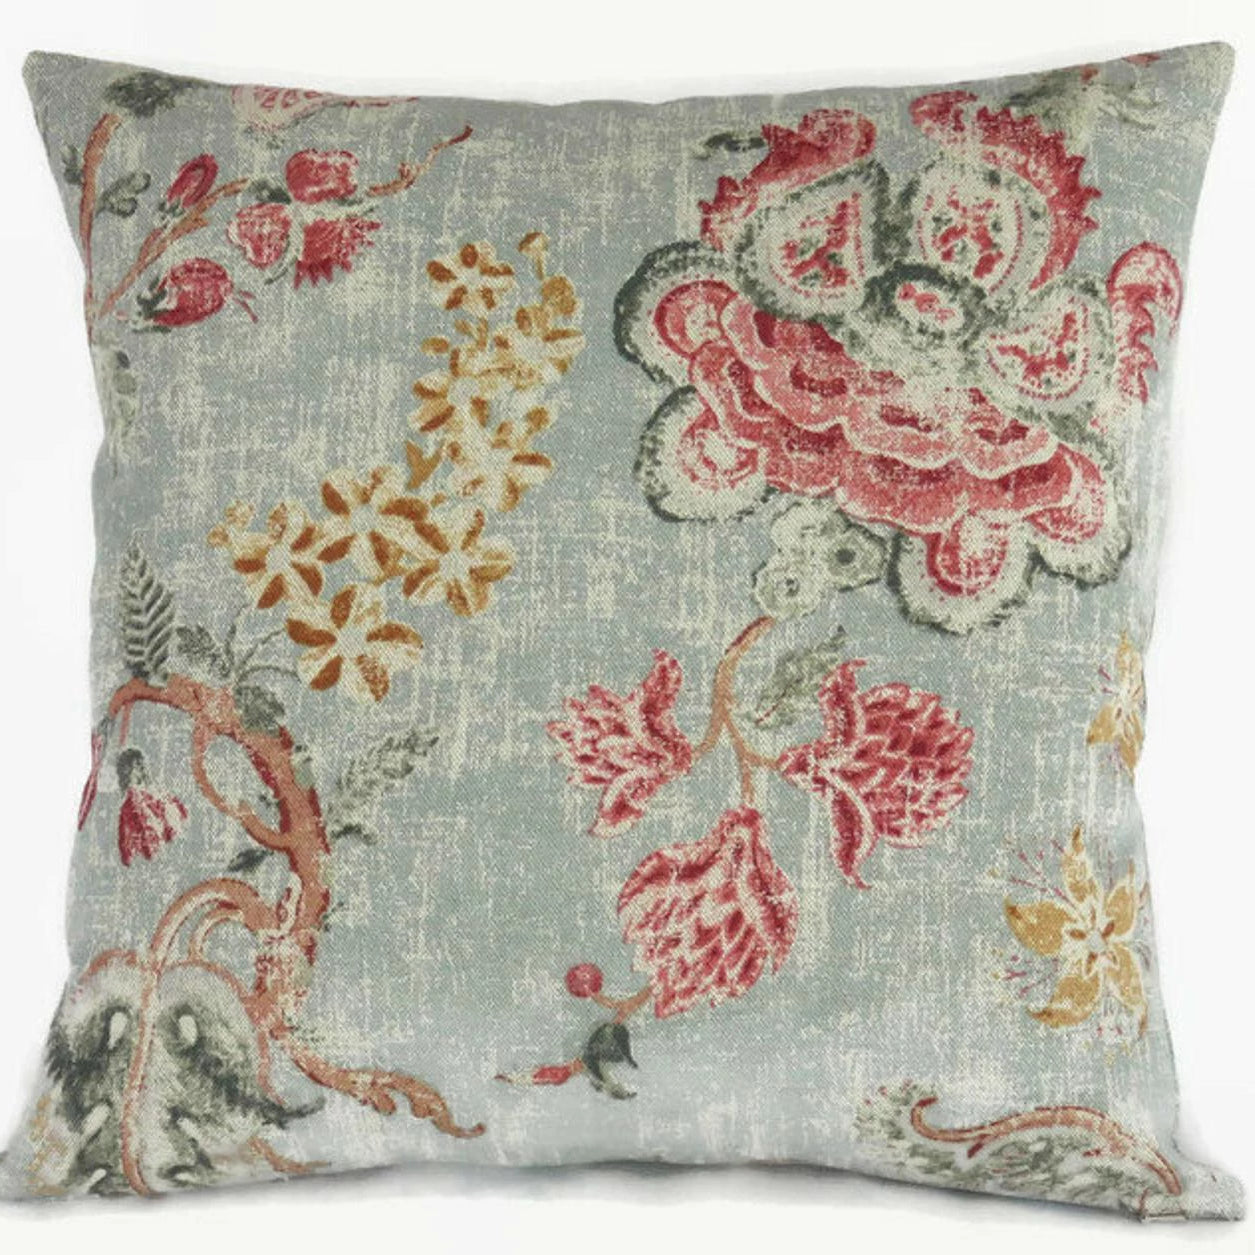 Blue and Red Floral Pillow,  P. Kaufmann Majestic Fabric in Chianti